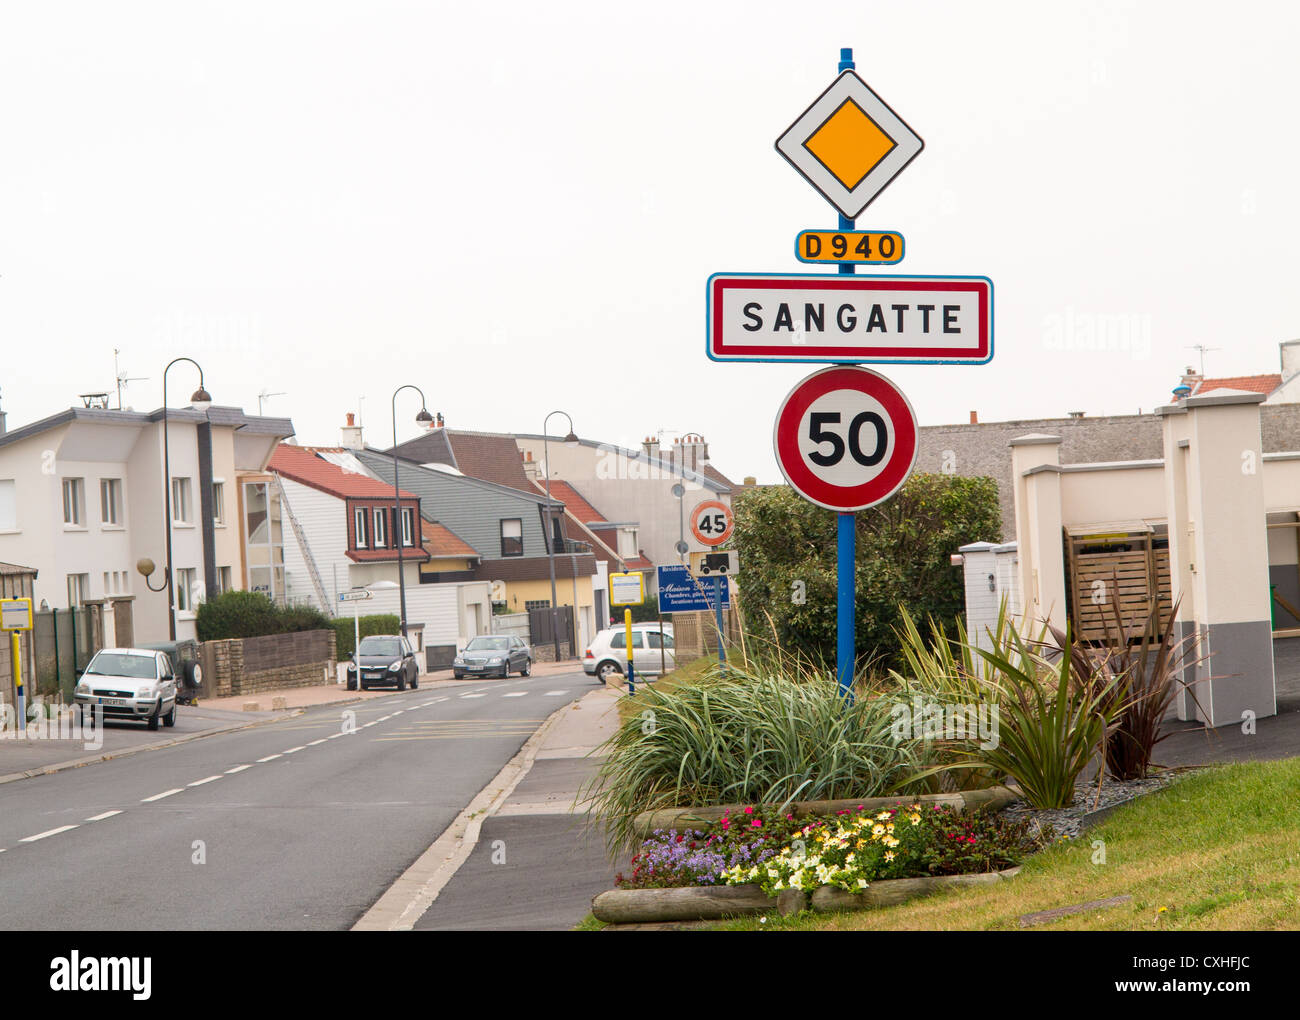 Town sign for Sangatte, Calais, france - Stock Image